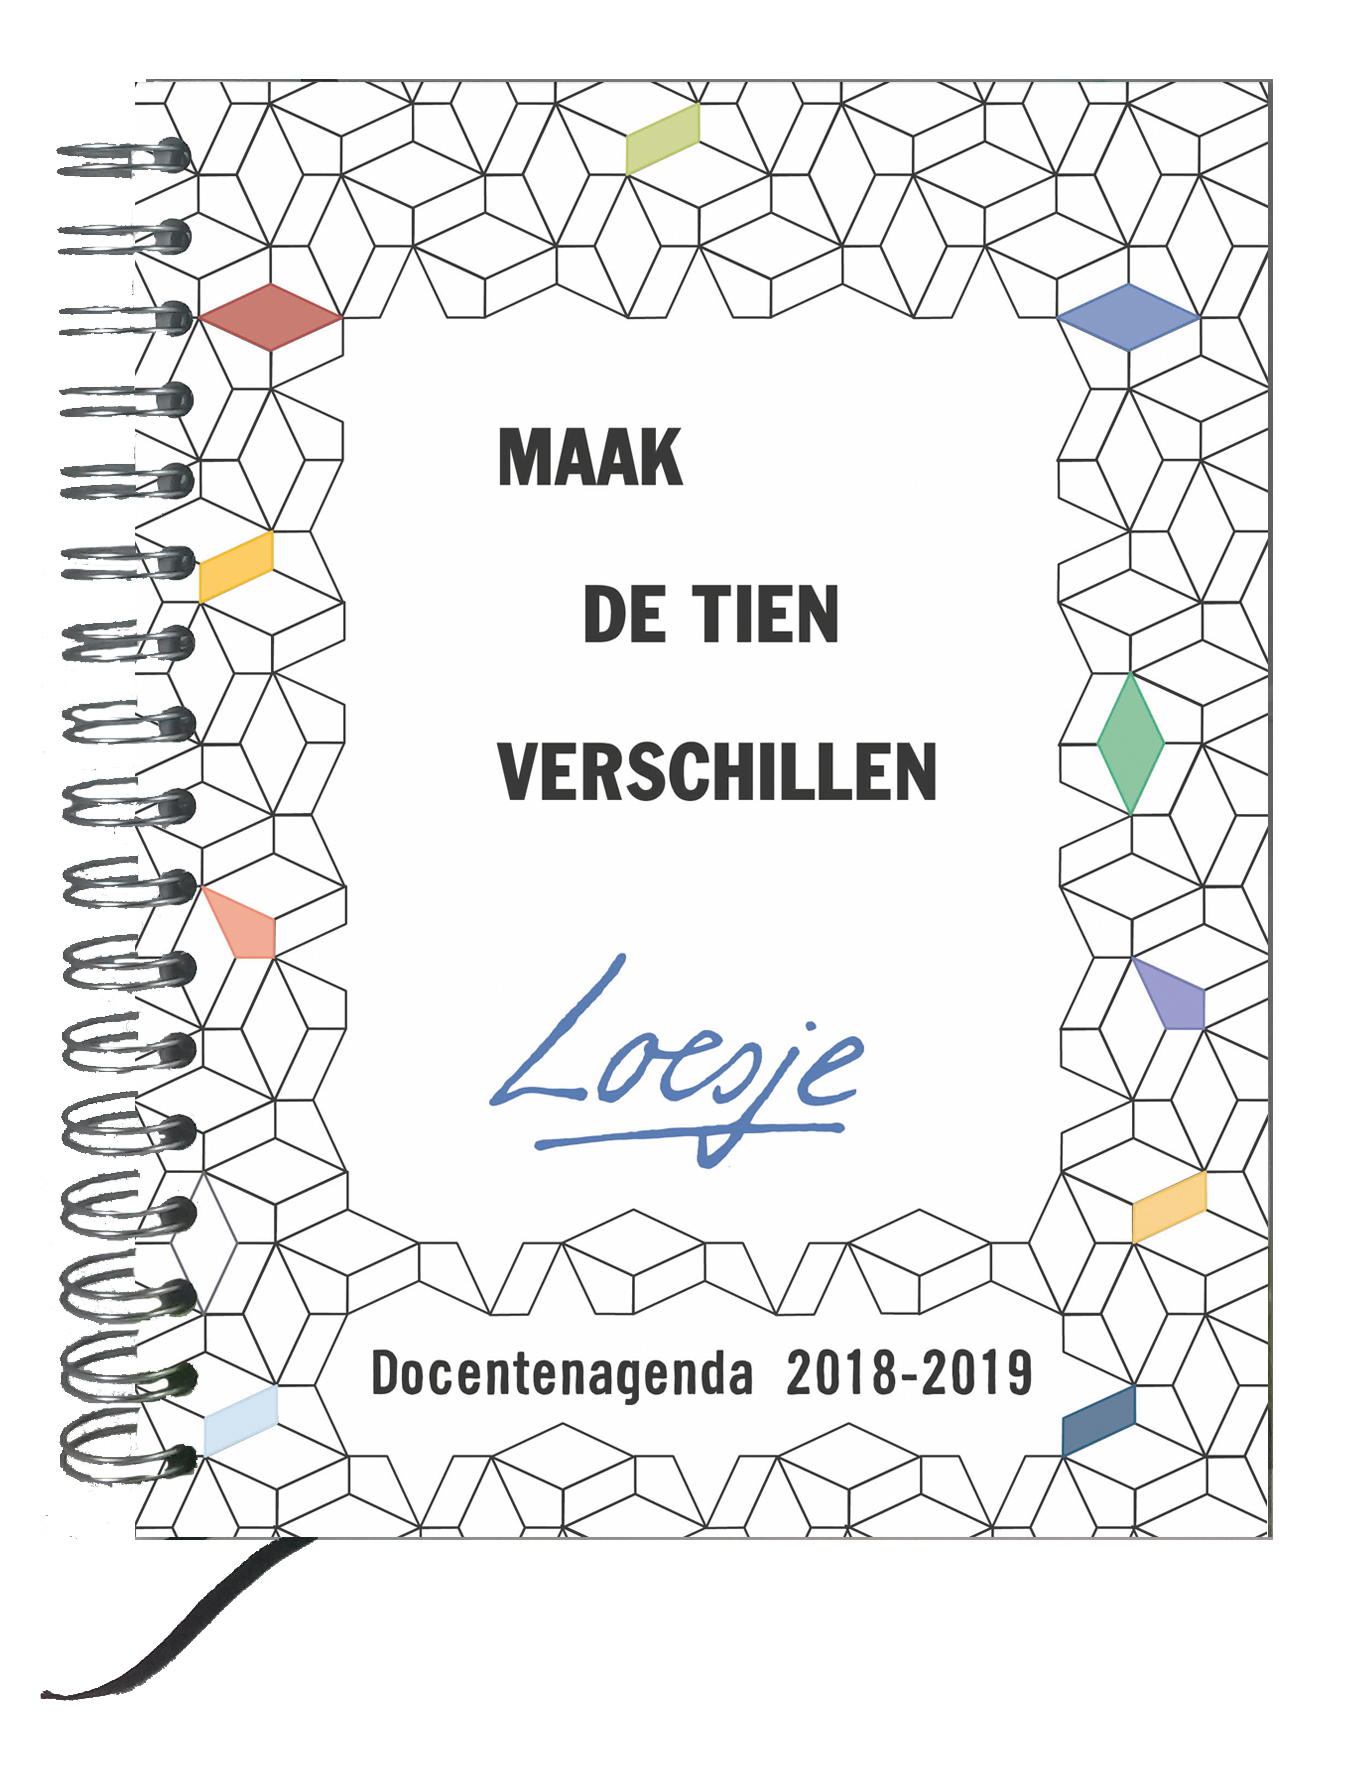 Genoeg Loesje docentenagenda / lerarenagenda 2018-2019 @VO85